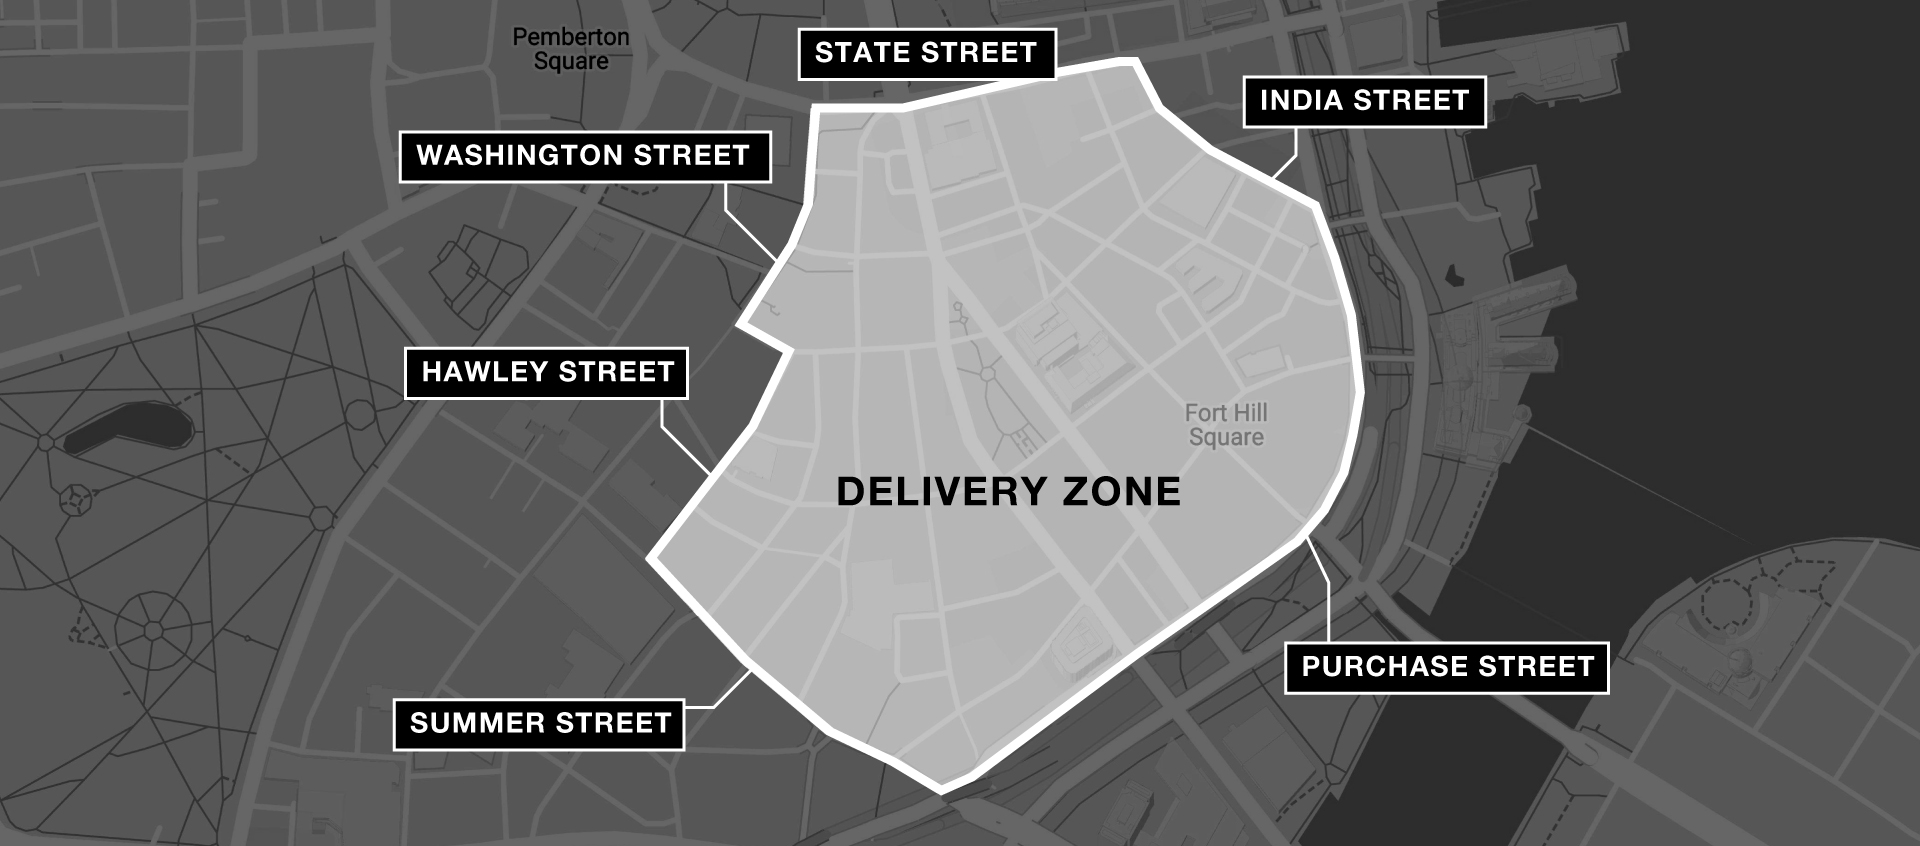 Boston Delivery Zone